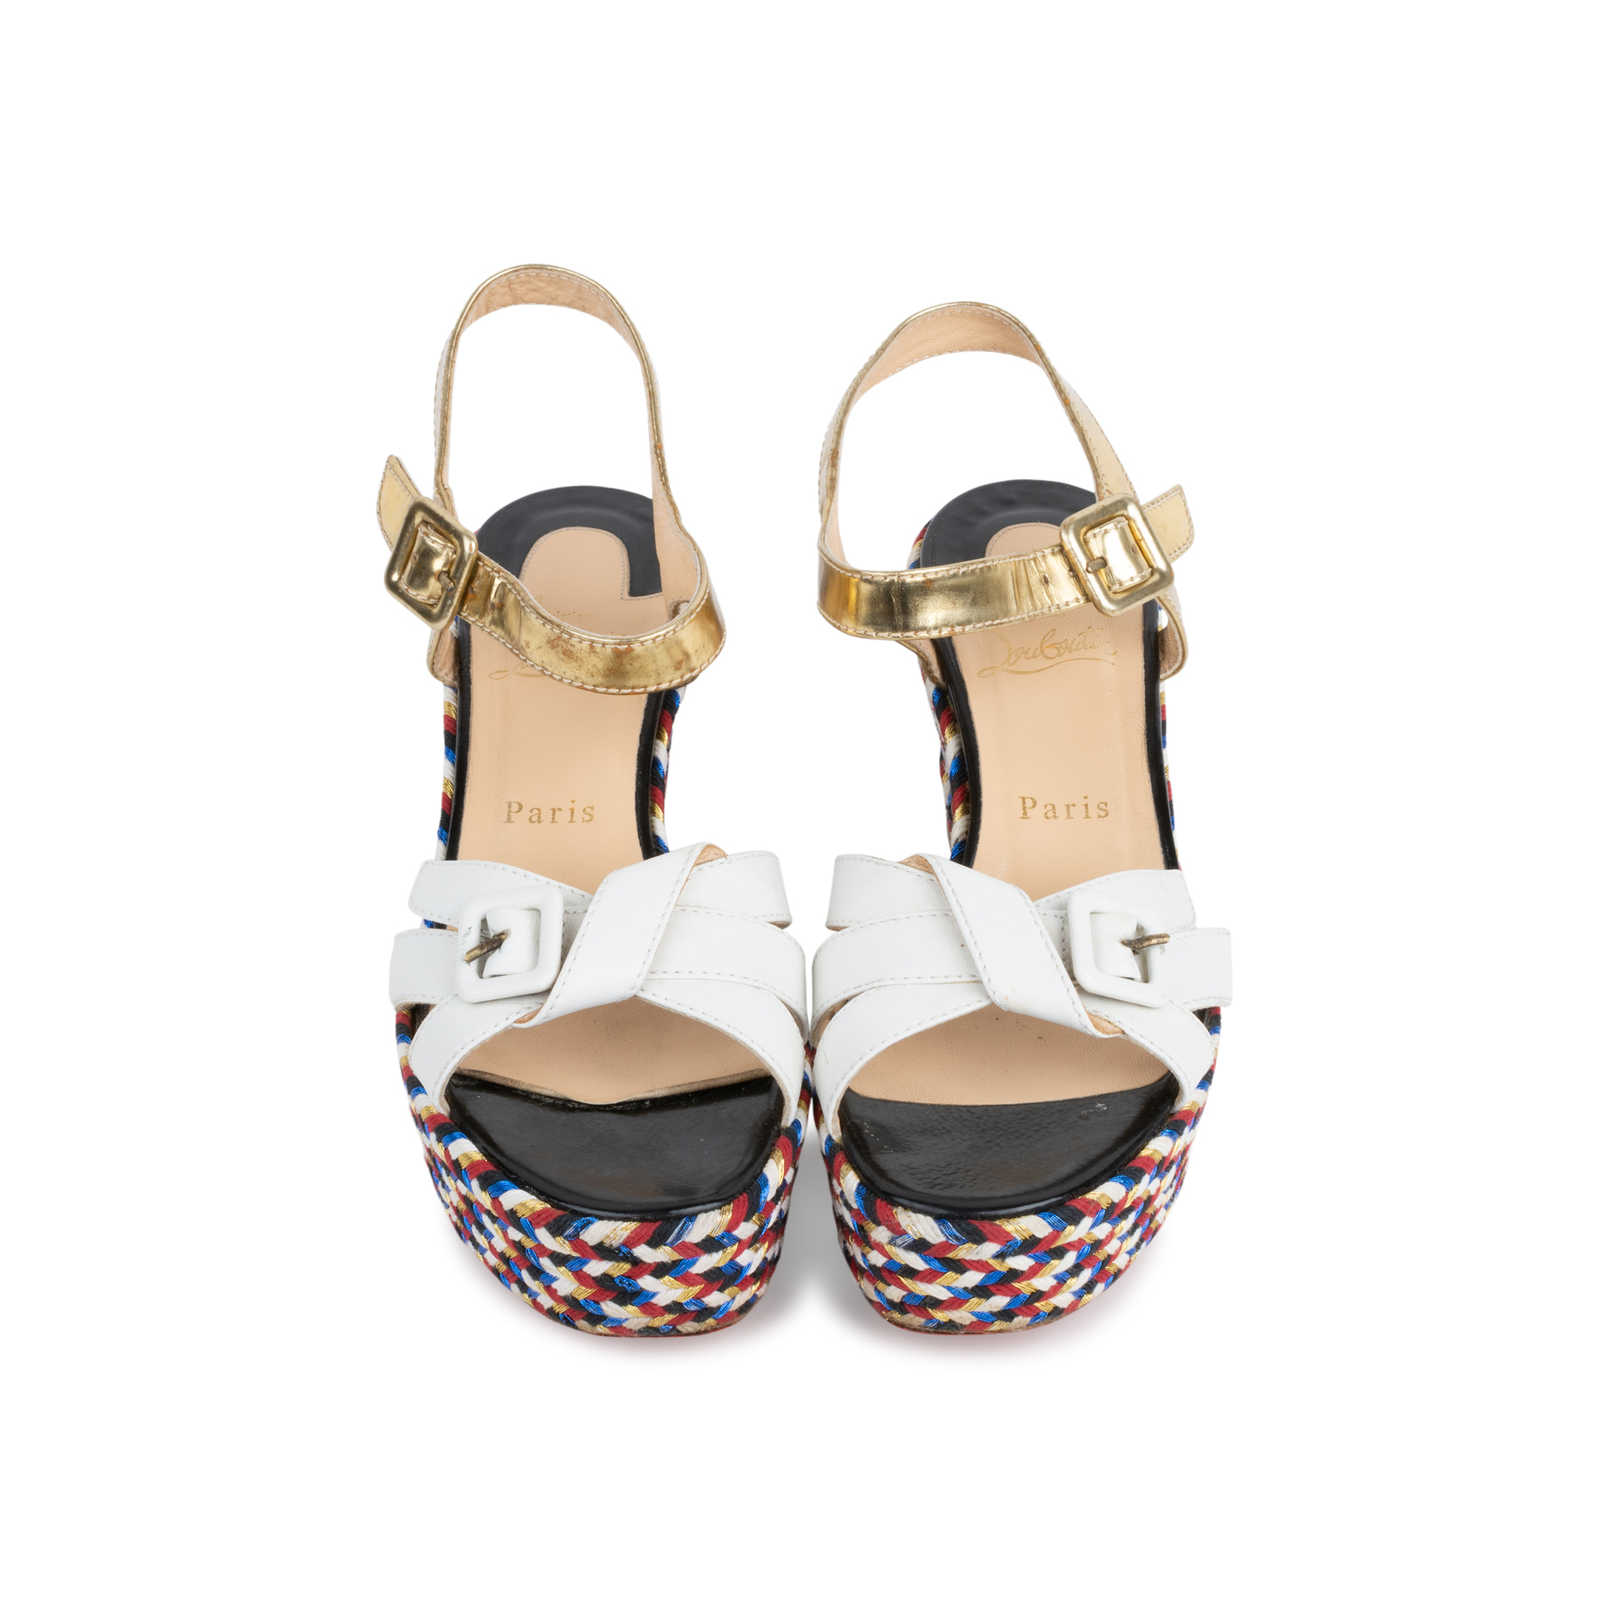 18c3be96cf6 Authentic Second Hand Christian Louboutin Laoga 70 Wedge Sandals  (PSS-566-00078) ...